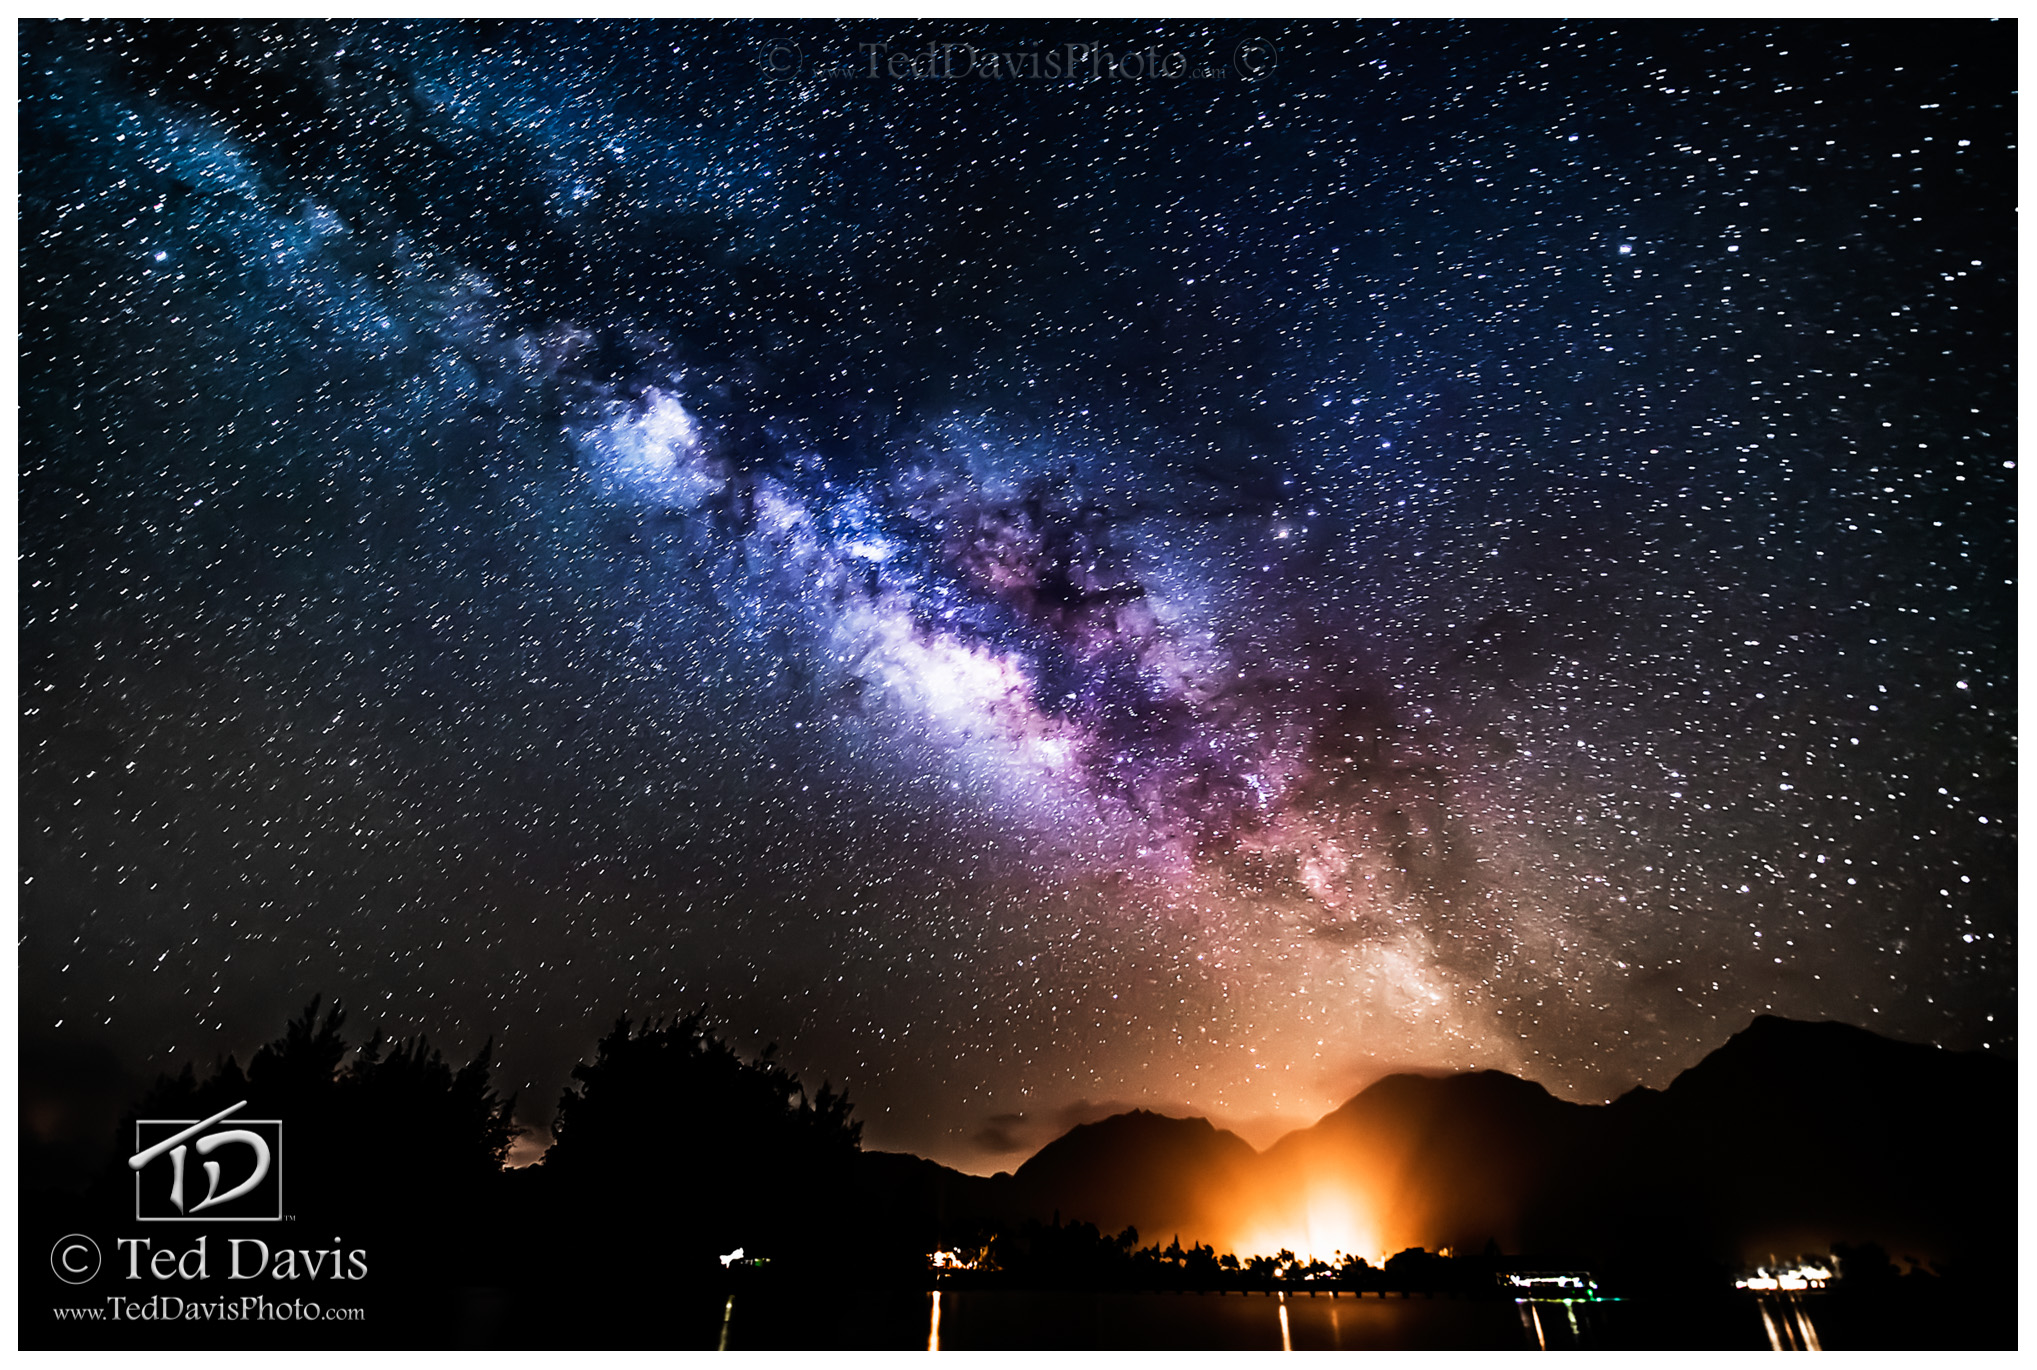 Hanalei, Kaua'i, Halo, Milky Way, Waves, Ocean, Pier, Night, Stars, Galaxy, nightsky, island, heavens, cosmos, photo